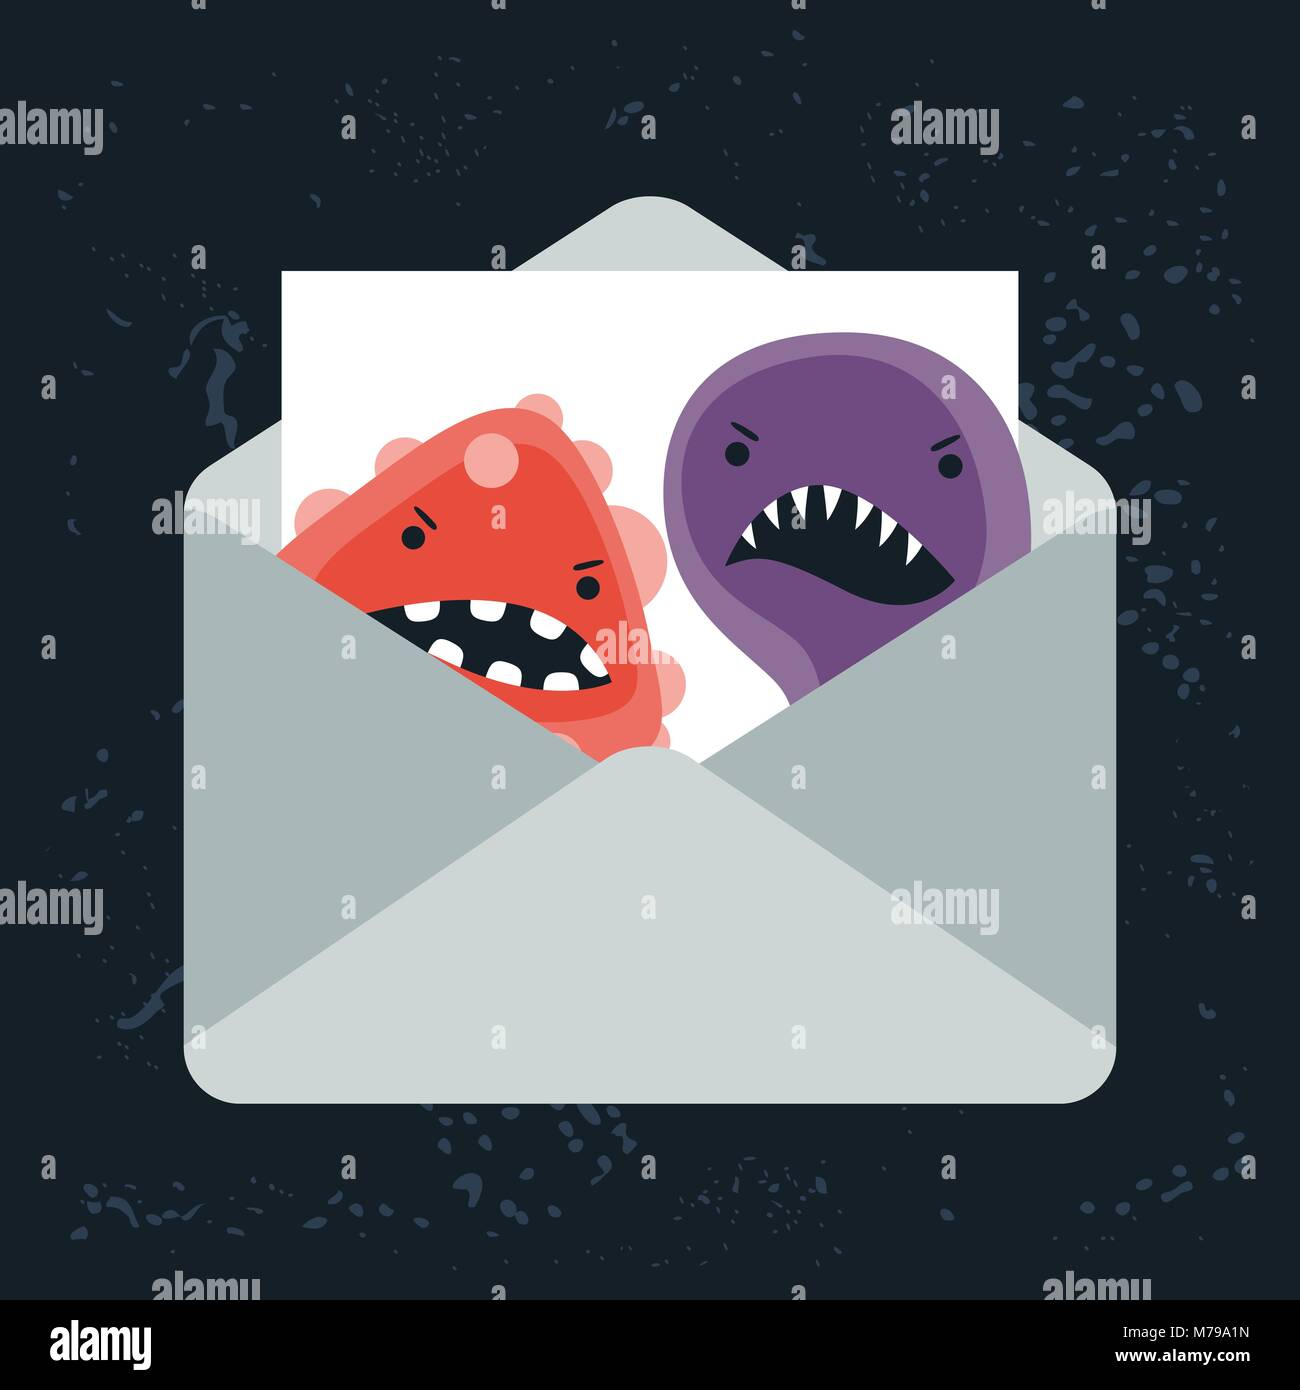 Abstrakte Abbildung e-mail Spam Virus Infektion. Stockbild